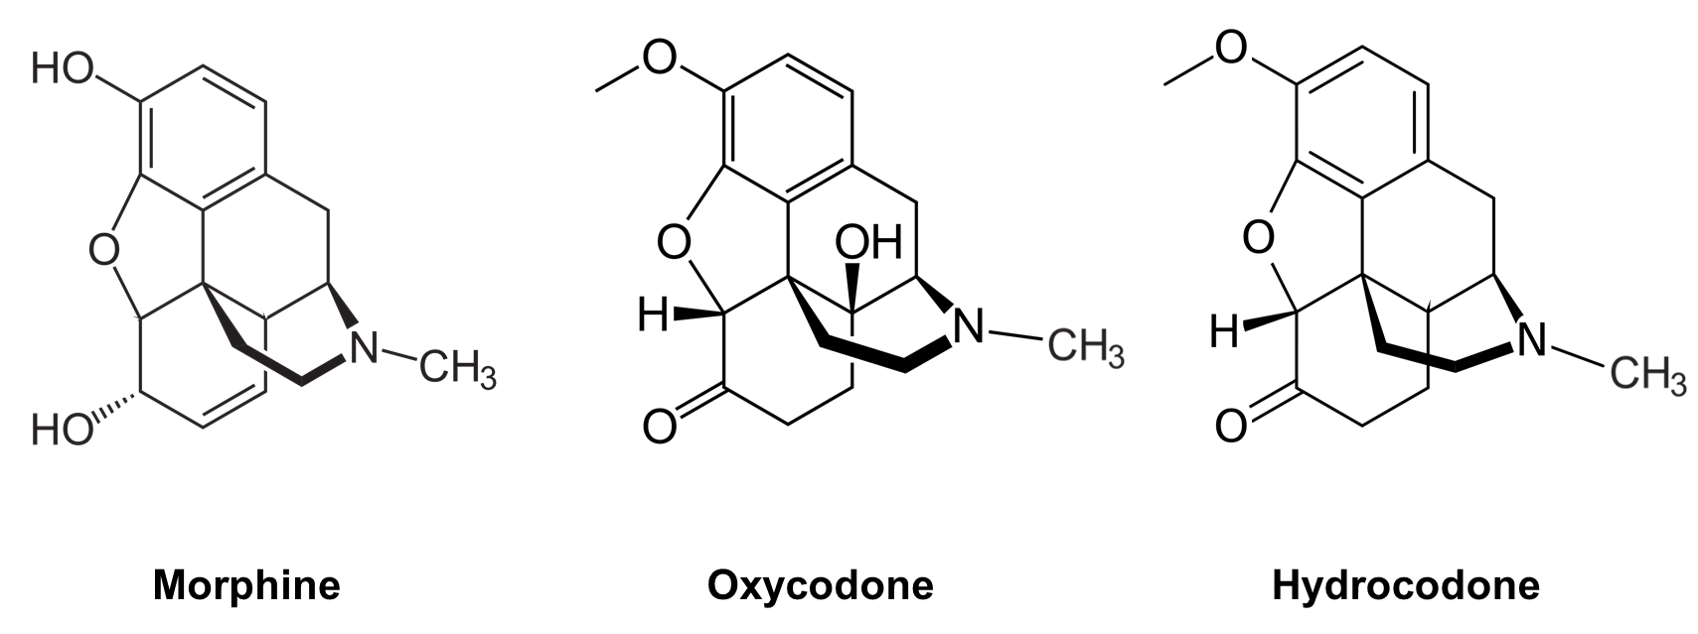 Structures of epoxymorphinan structures